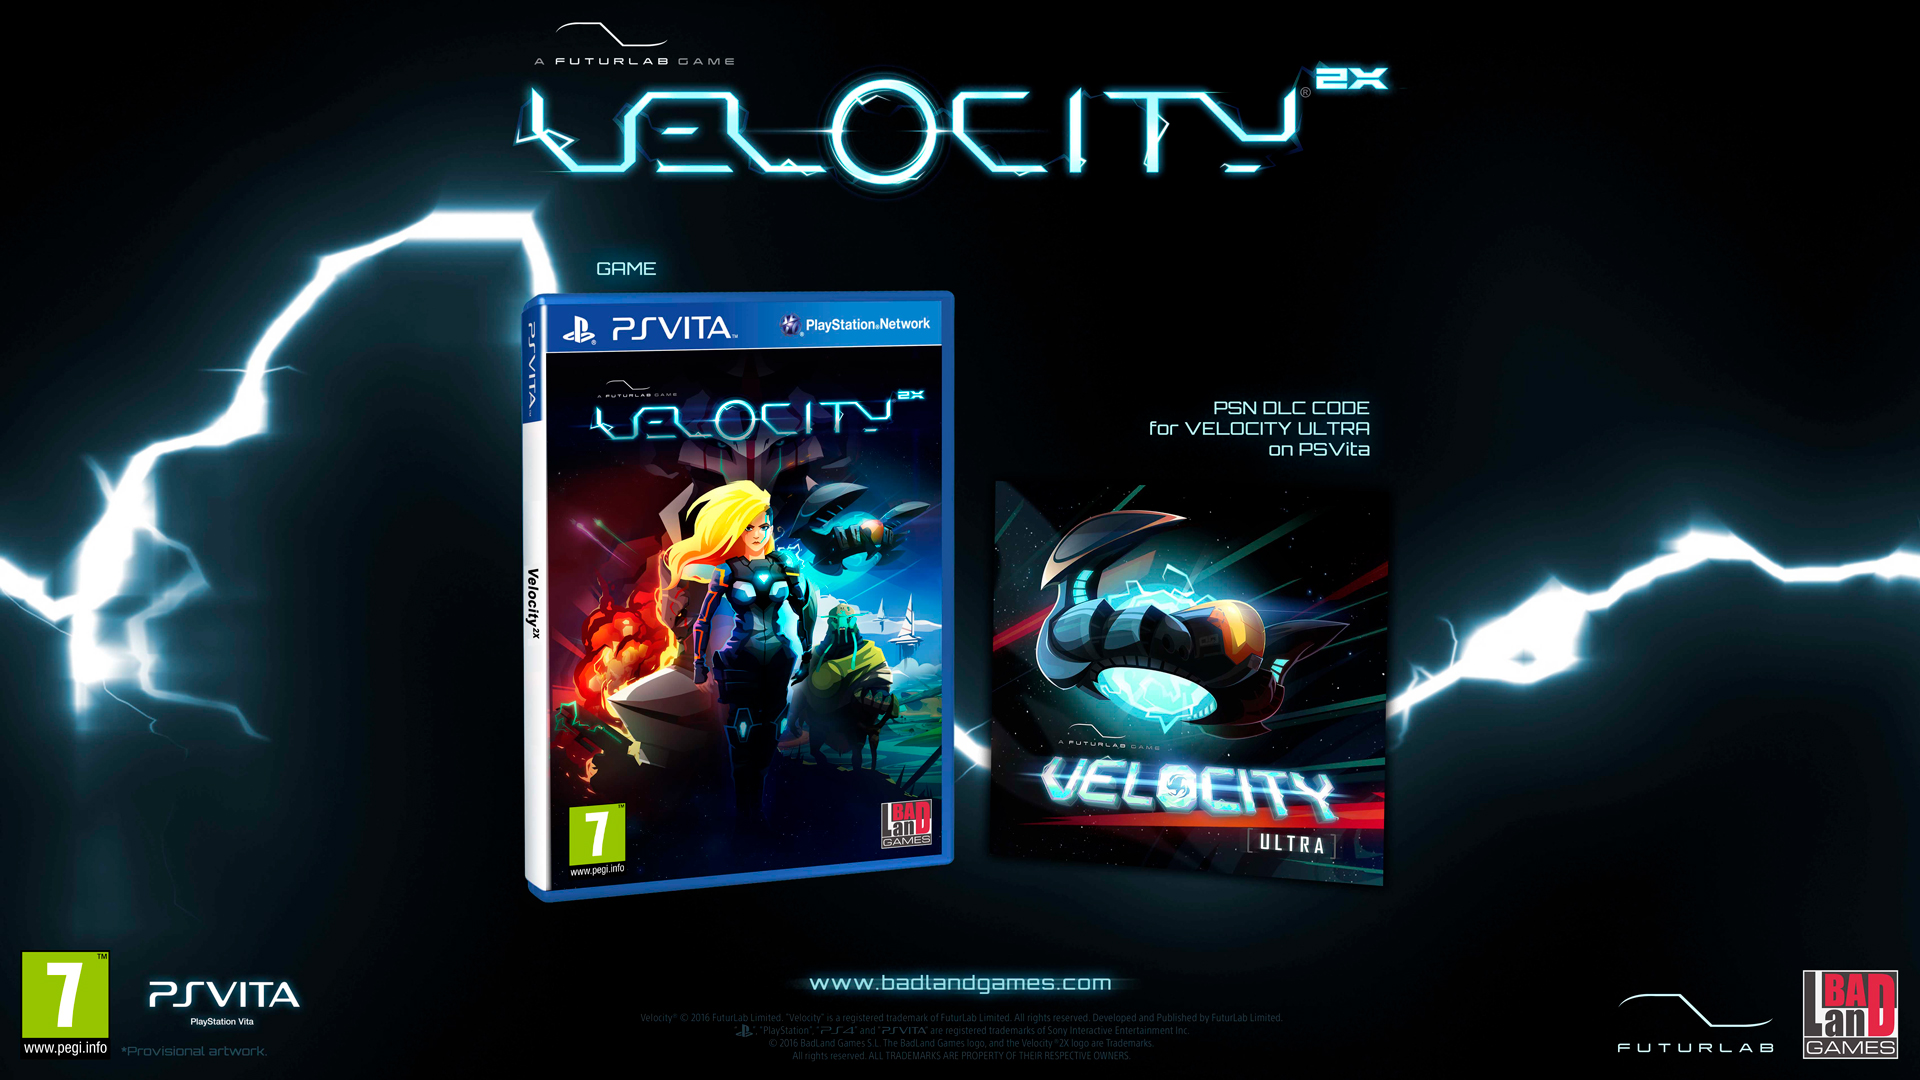 VELOCITY_2X_PSVITA_MOCK-UP-FINAL-LOW-RES